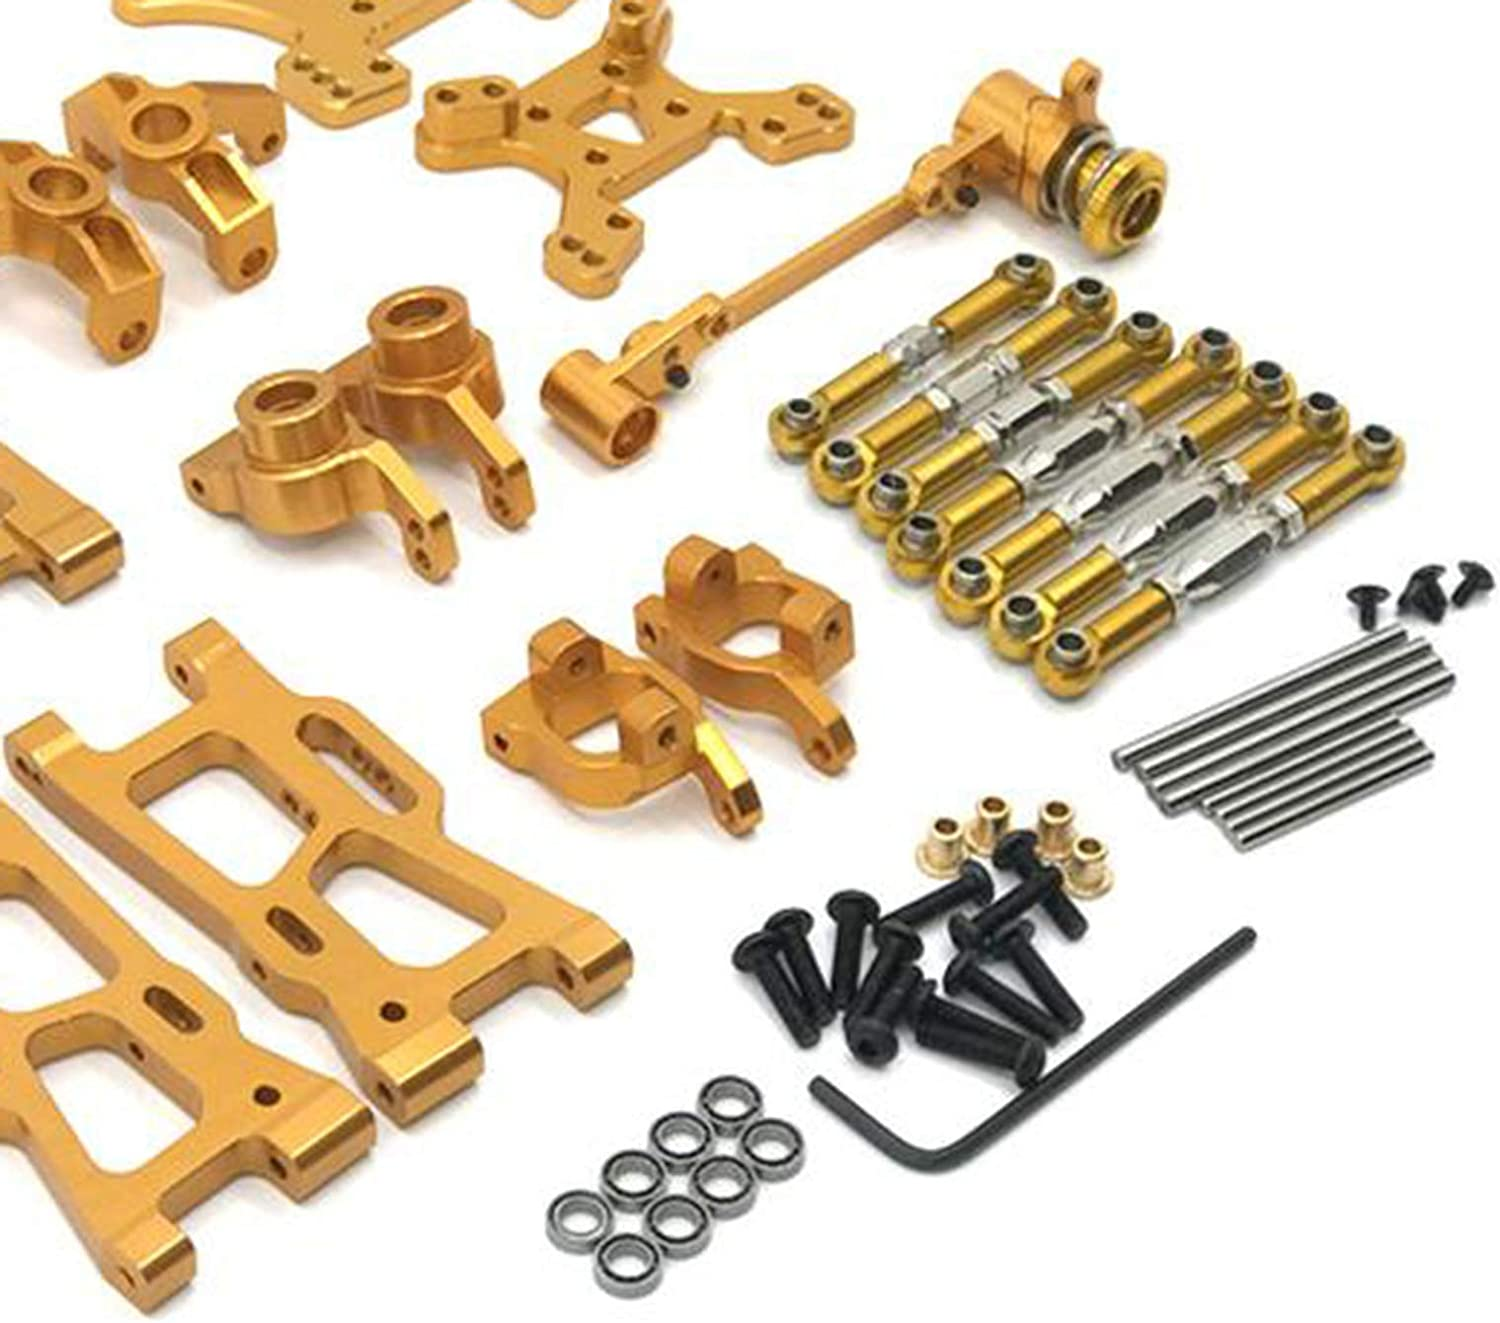 Full Metal Upgrades Parts Fit for WLtoys 144001 124019 RC Car Bearings